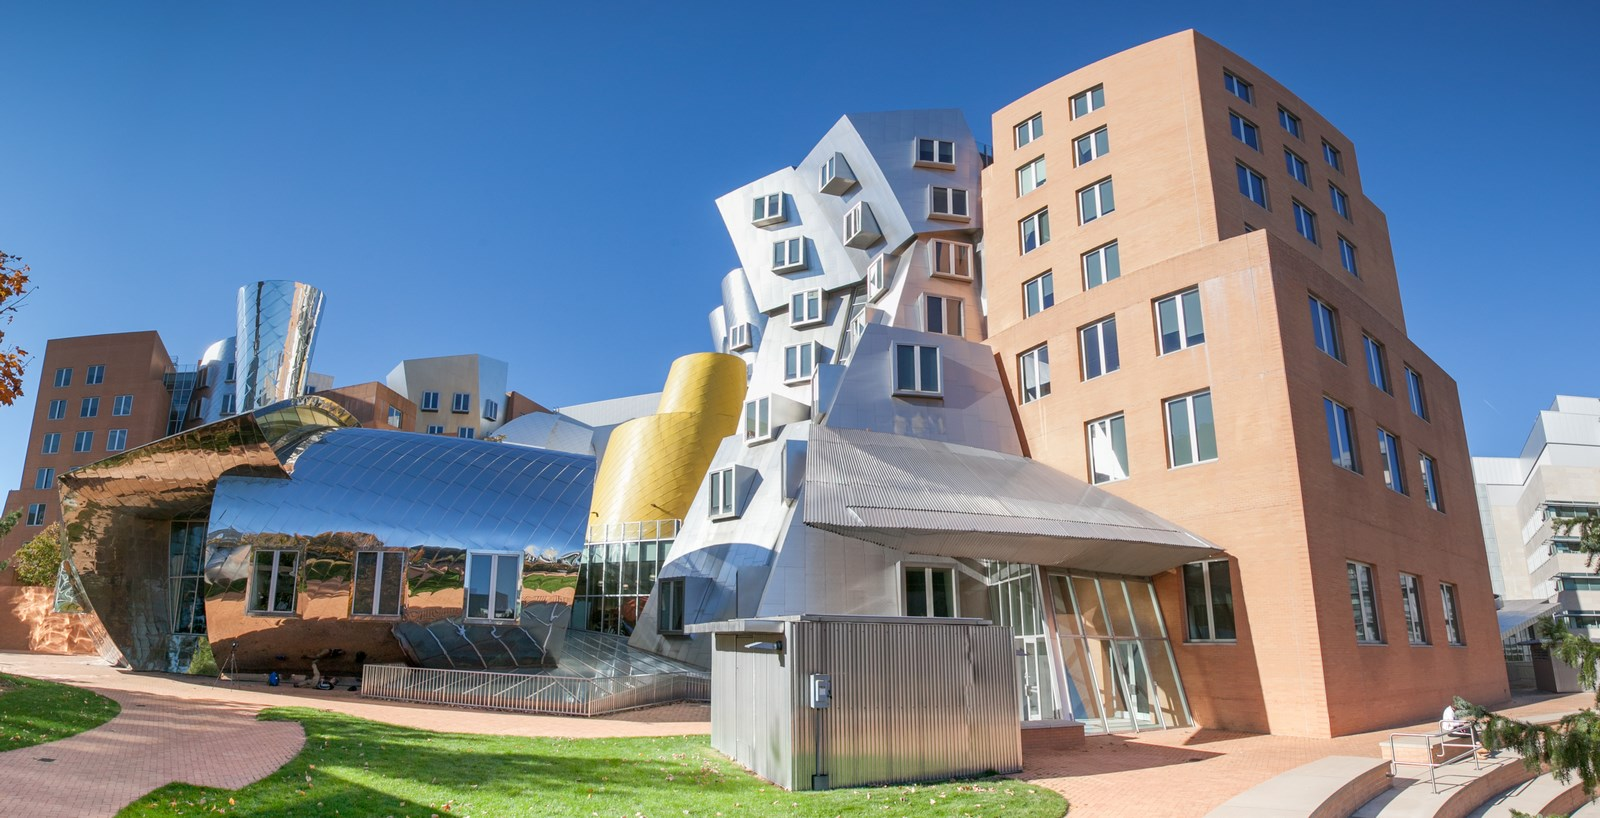 25 Most Iconic Structures In Boston - MIT STATA CENTER - Sheet2